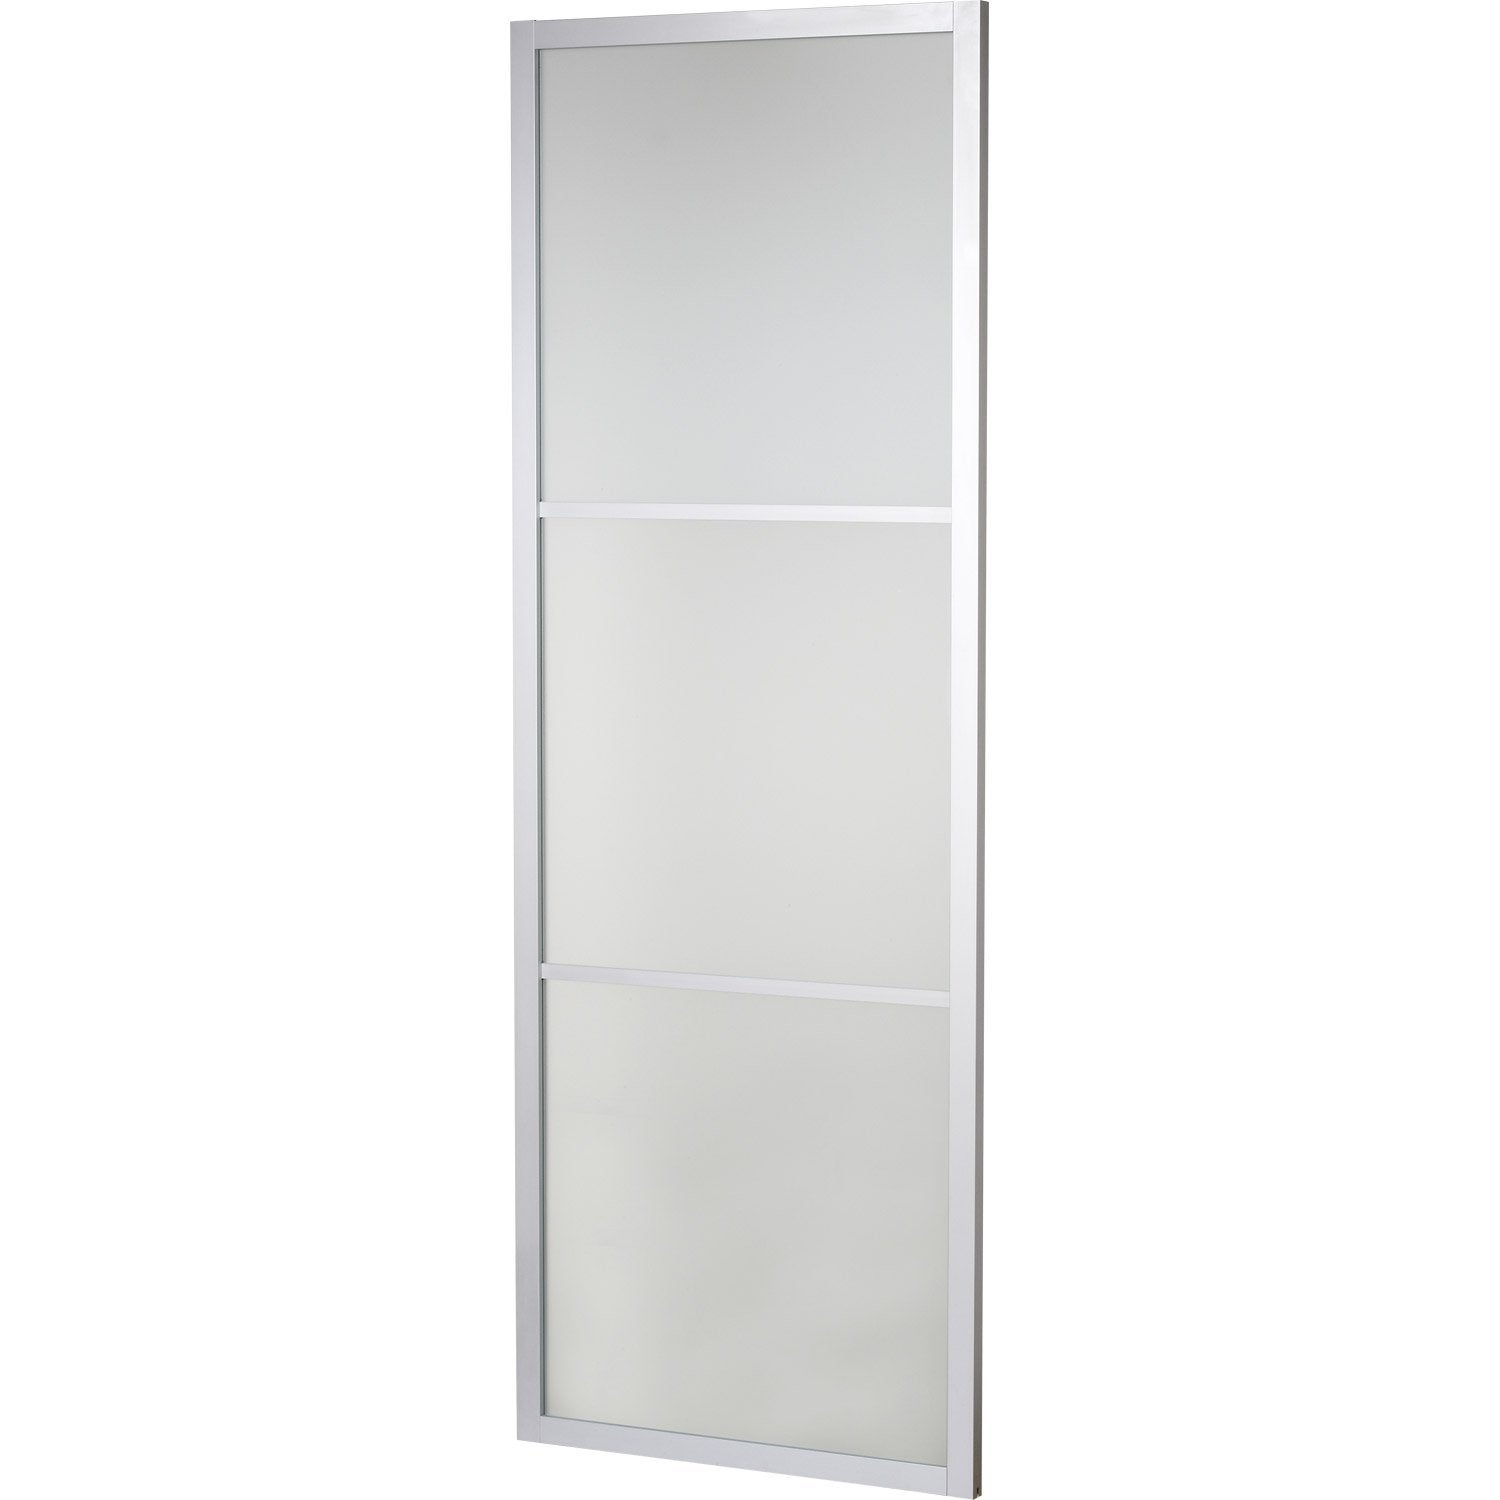 Porte coulissante verre tremp aspen artens 204 x 73 cm for Monter des portes coulissantes